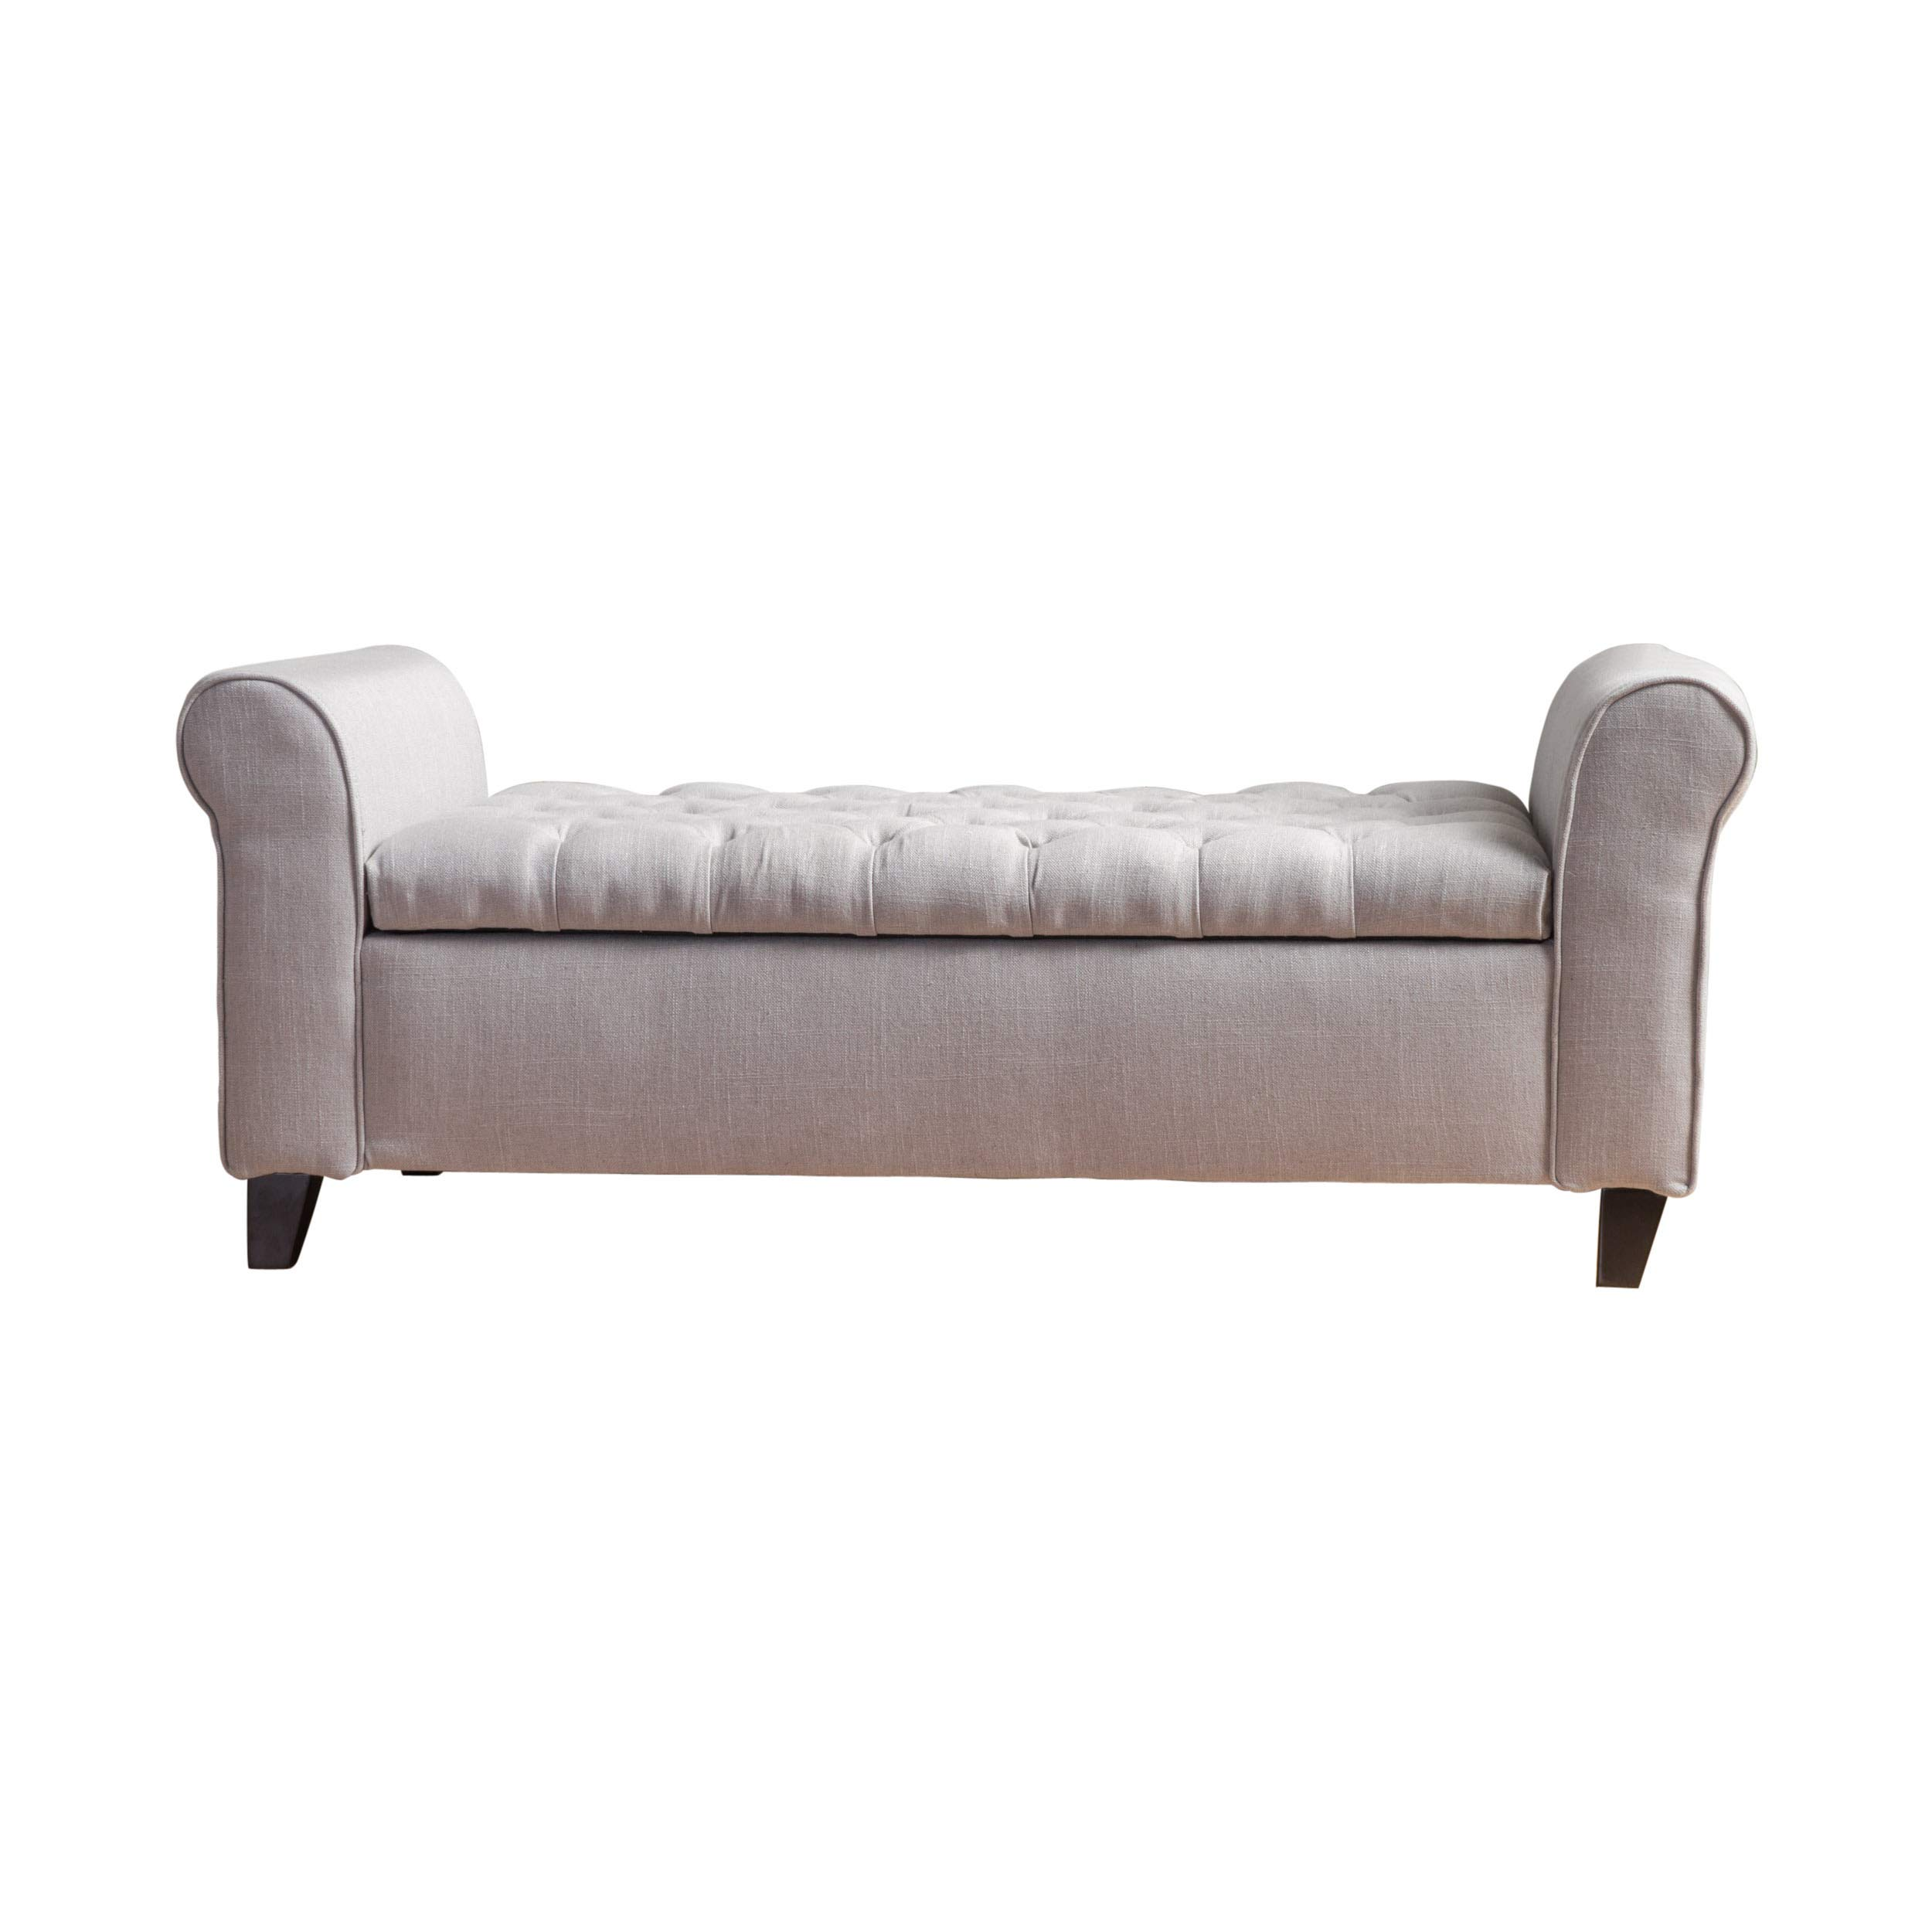 Christopher Knight Home Living Lamara Light Grey Fabric Armed Storage Bench, 19.50'' D x 50.00'' W x 19.25'' H by Christopher Knight Home